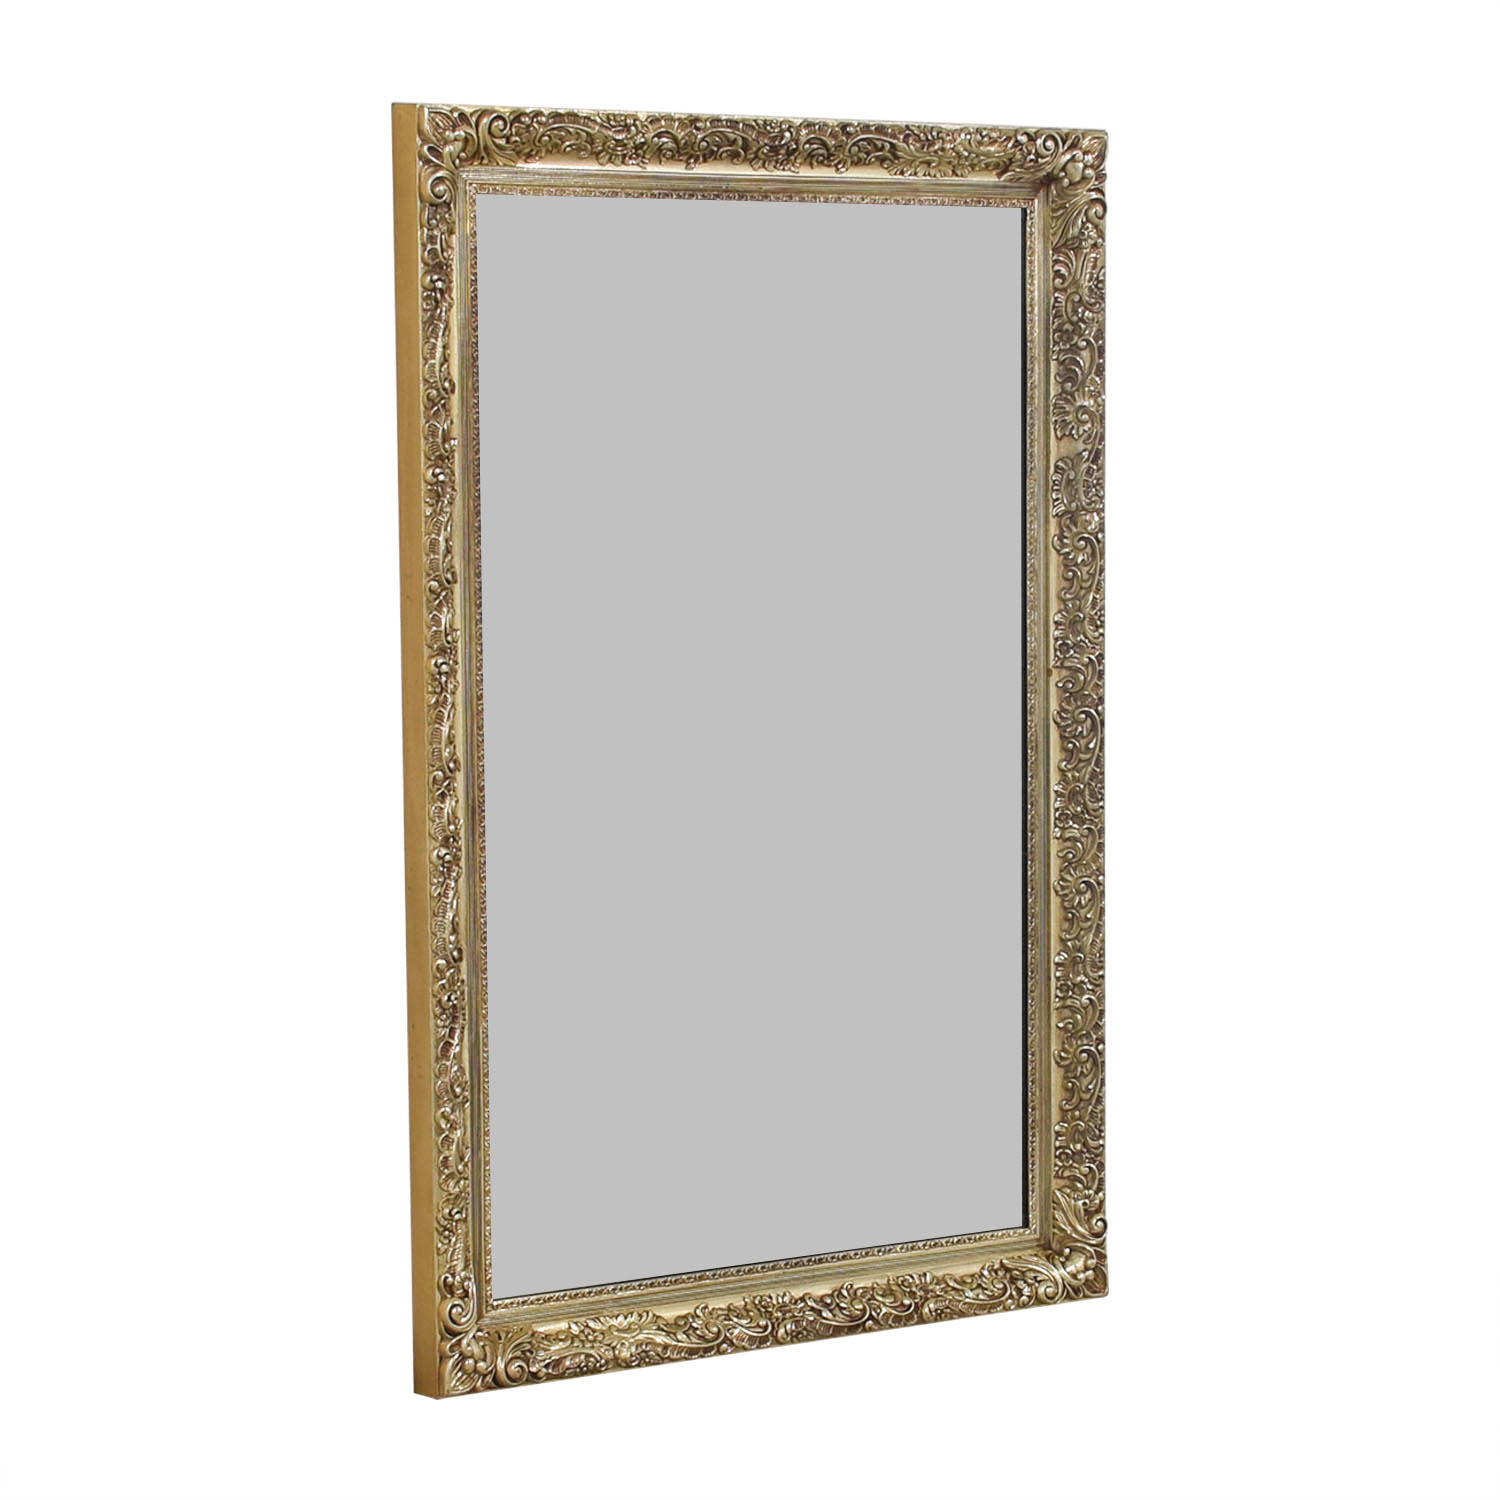 Gold Scroll Mirror / Mirrors